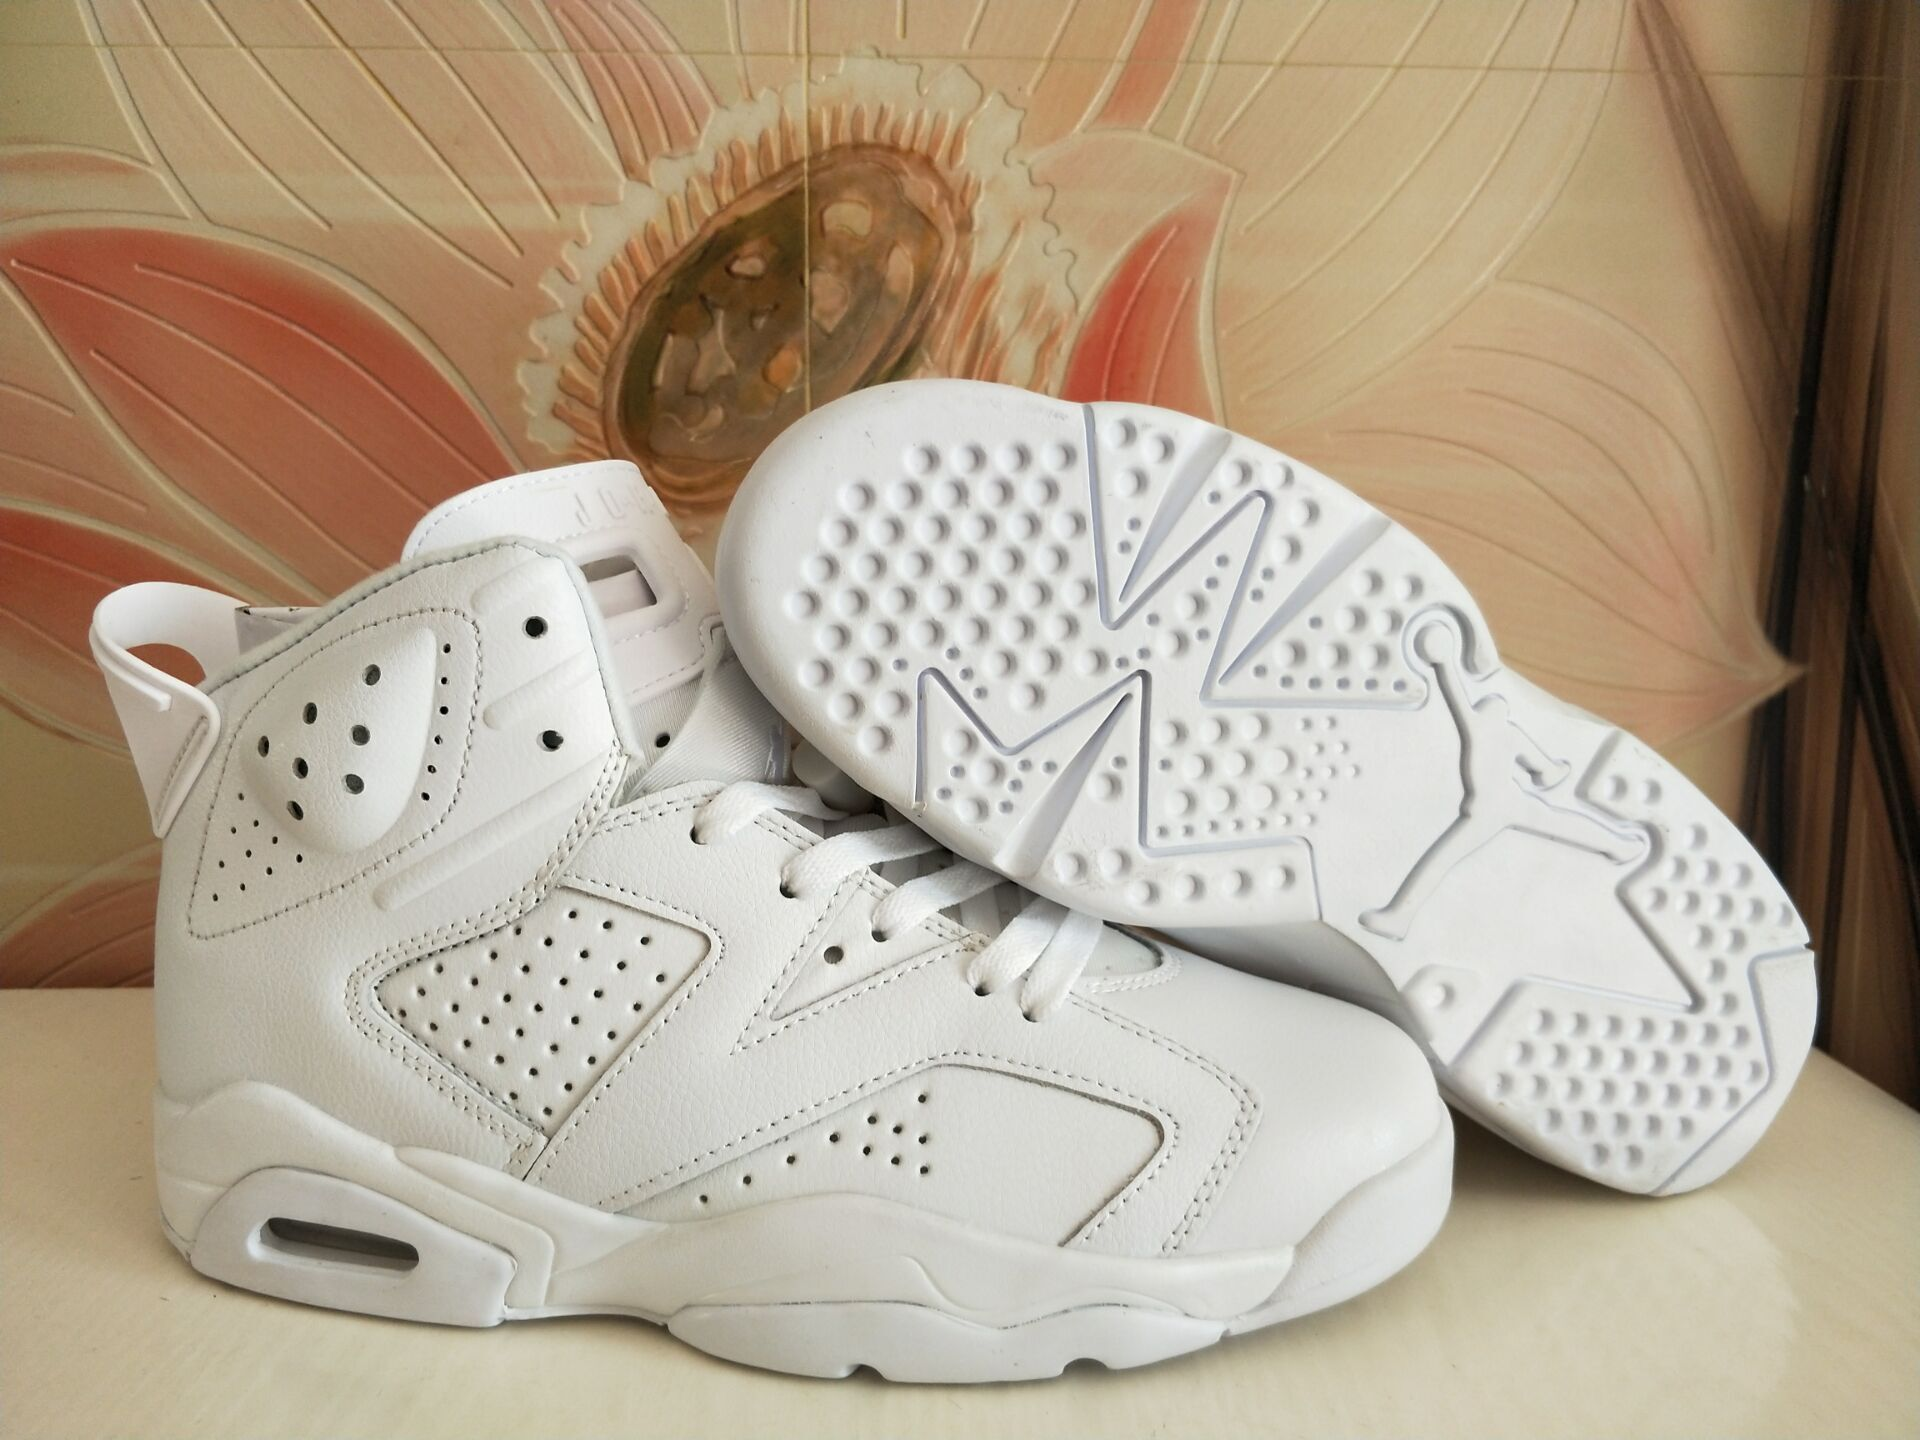 Air Jordan 6 All White Shoes